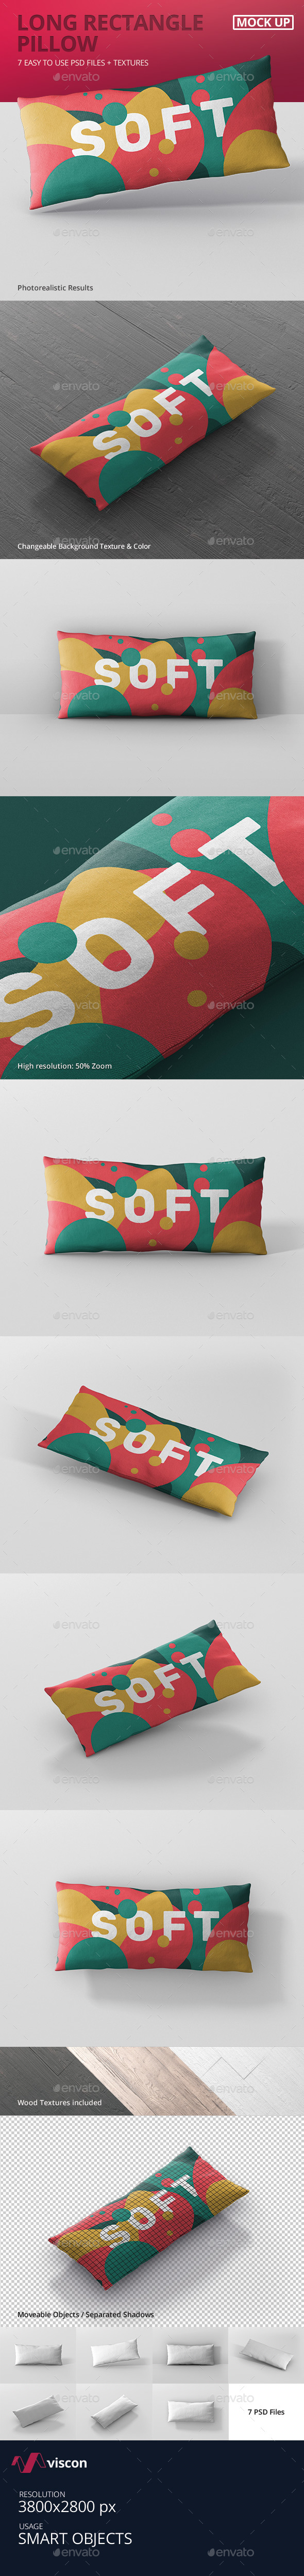 Pillow Mockup - Long Rectangle - Miscellaneous Product Mock-Ups